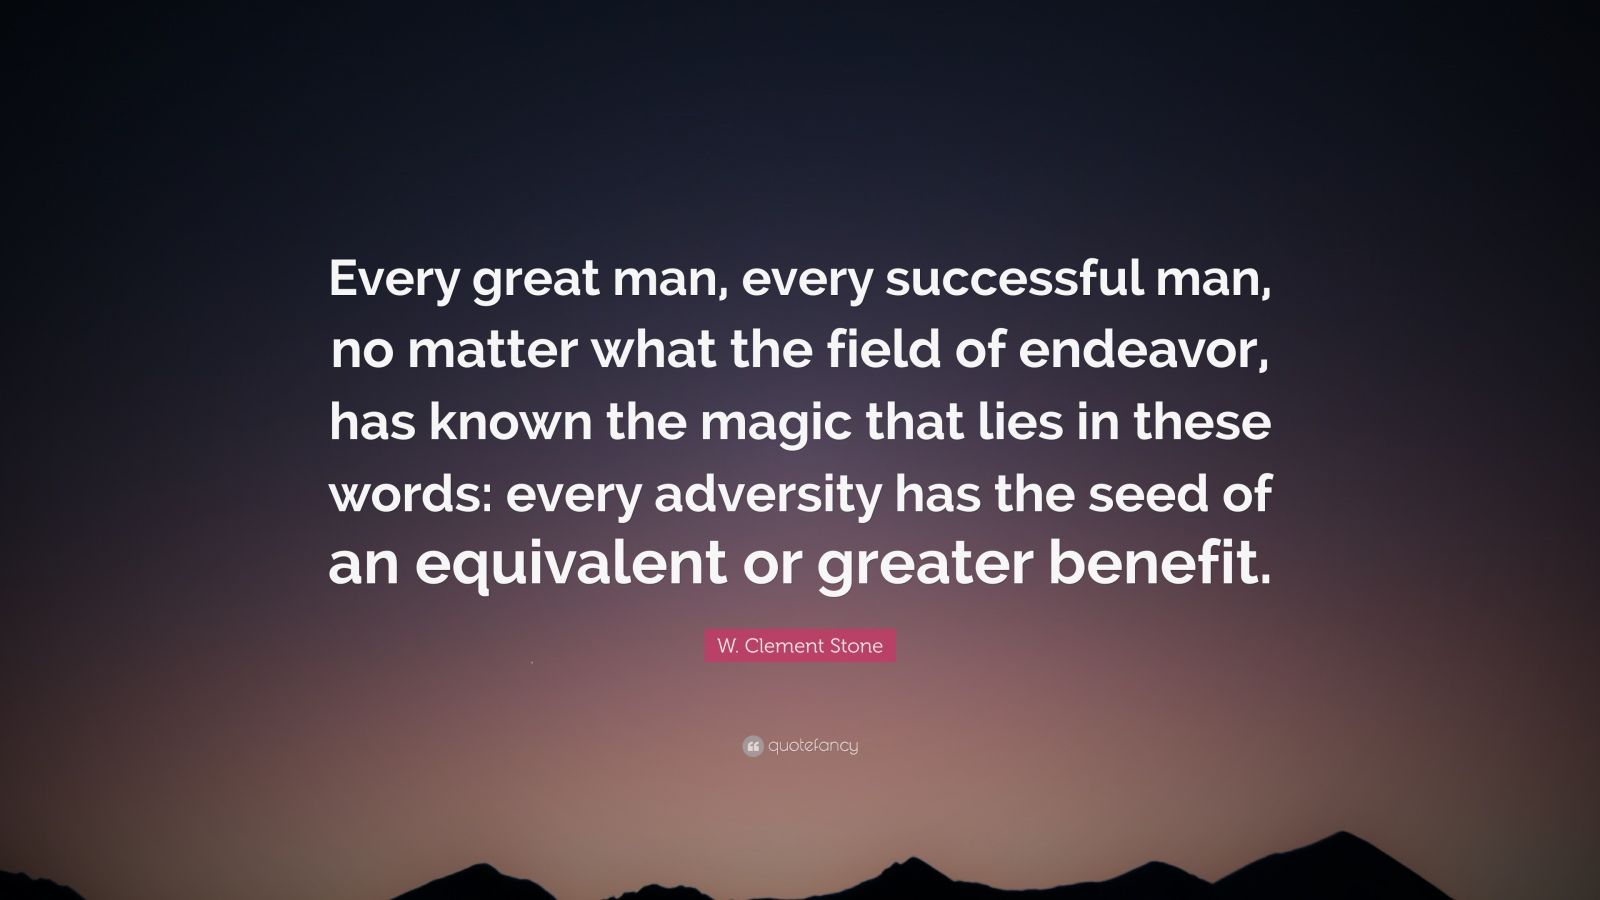 "W. Clement Stone Quote: ""Every great man, every successful man, no matter what the field of endeavor, has known the magic that lies in these words: every adversity has the seed of an equivalent or greater benefit."""